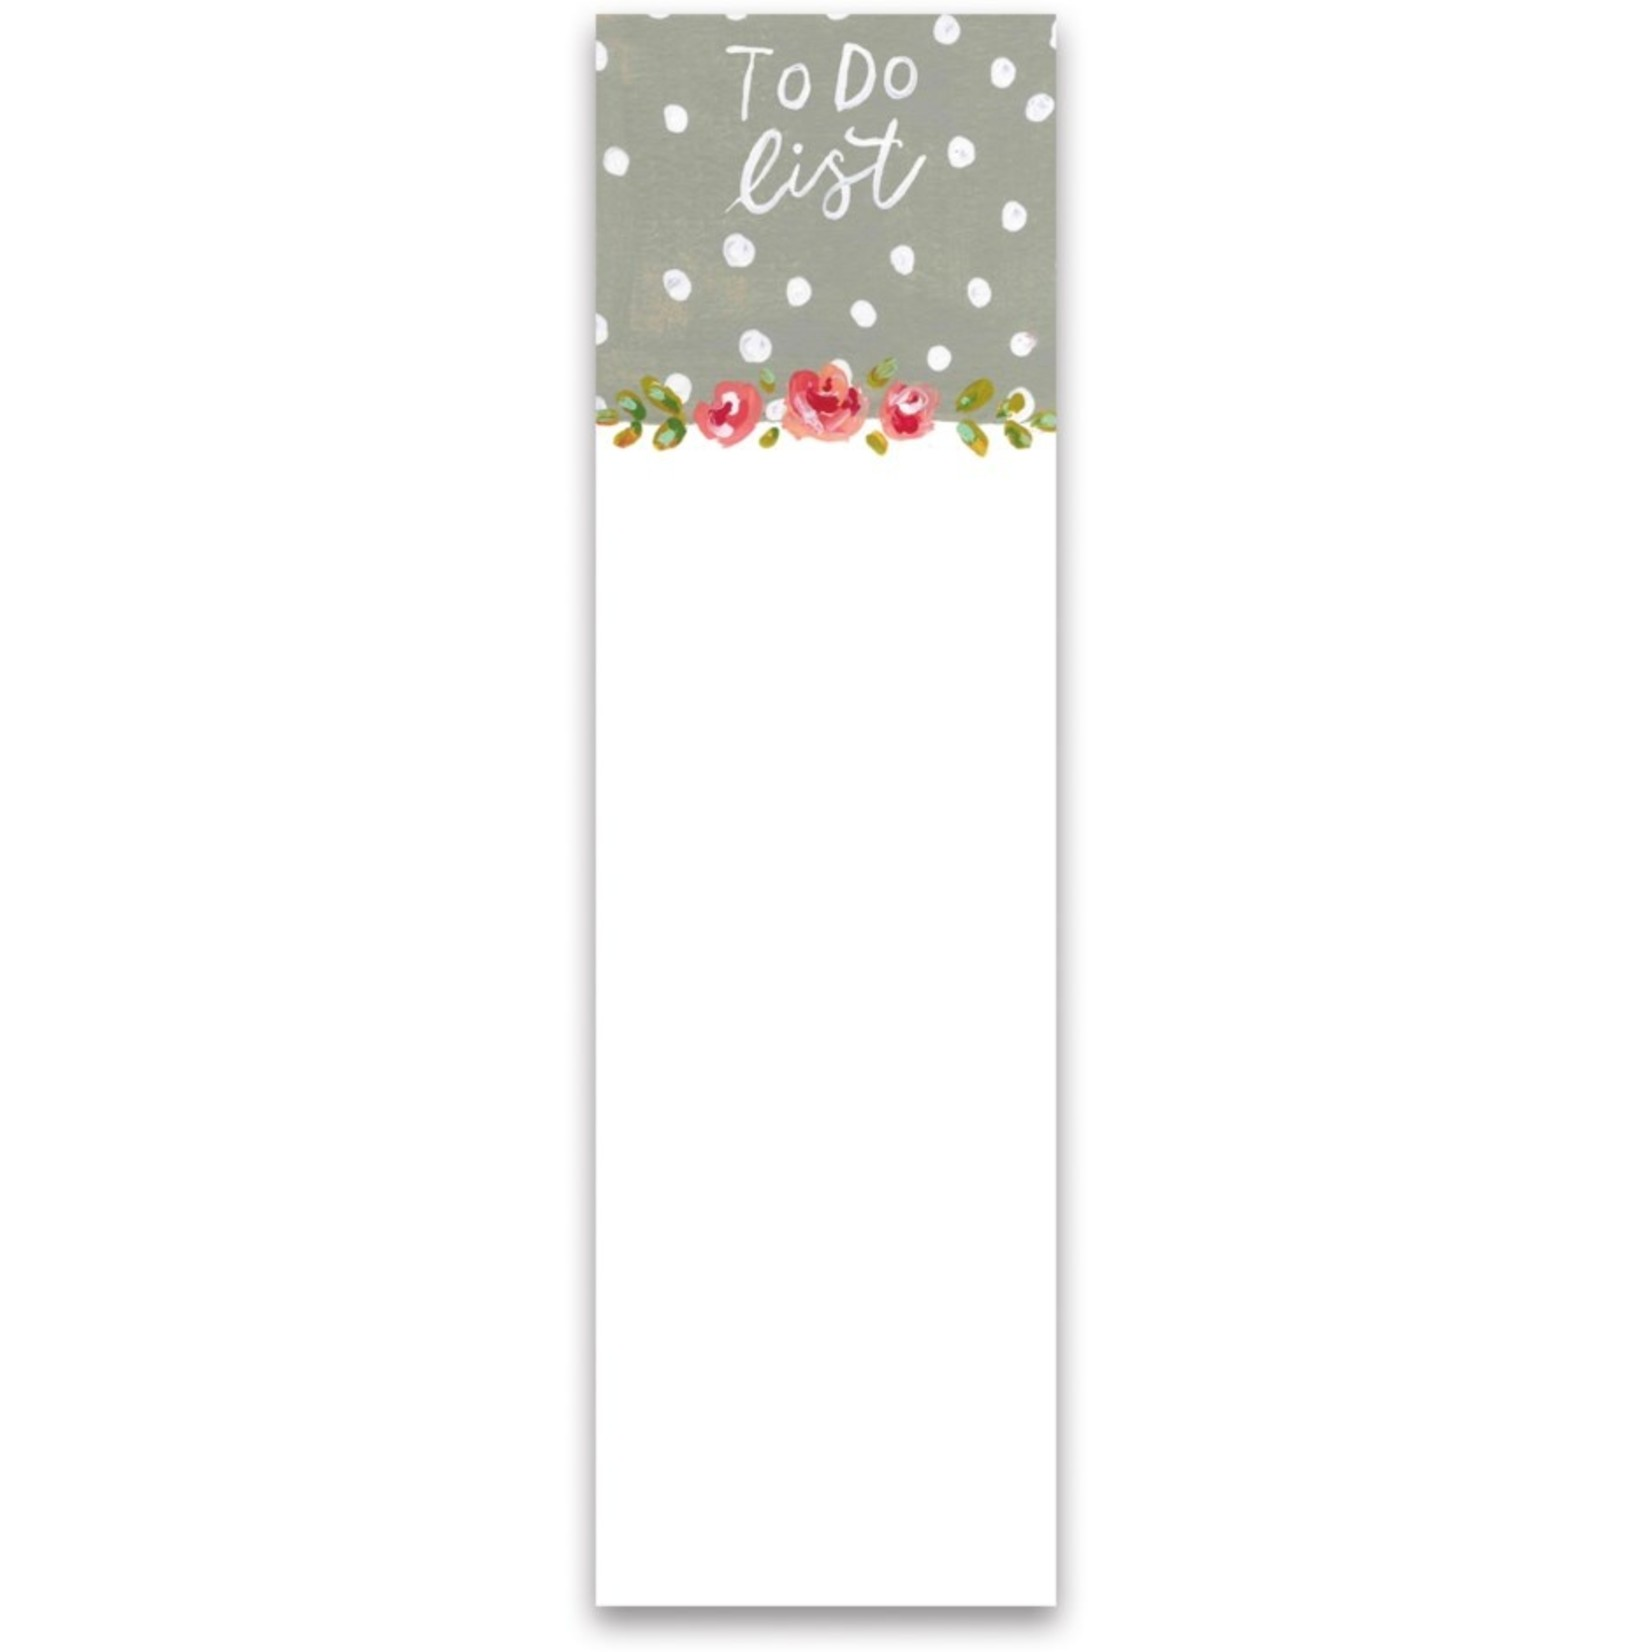 List Notepad - To Do List, Flowers